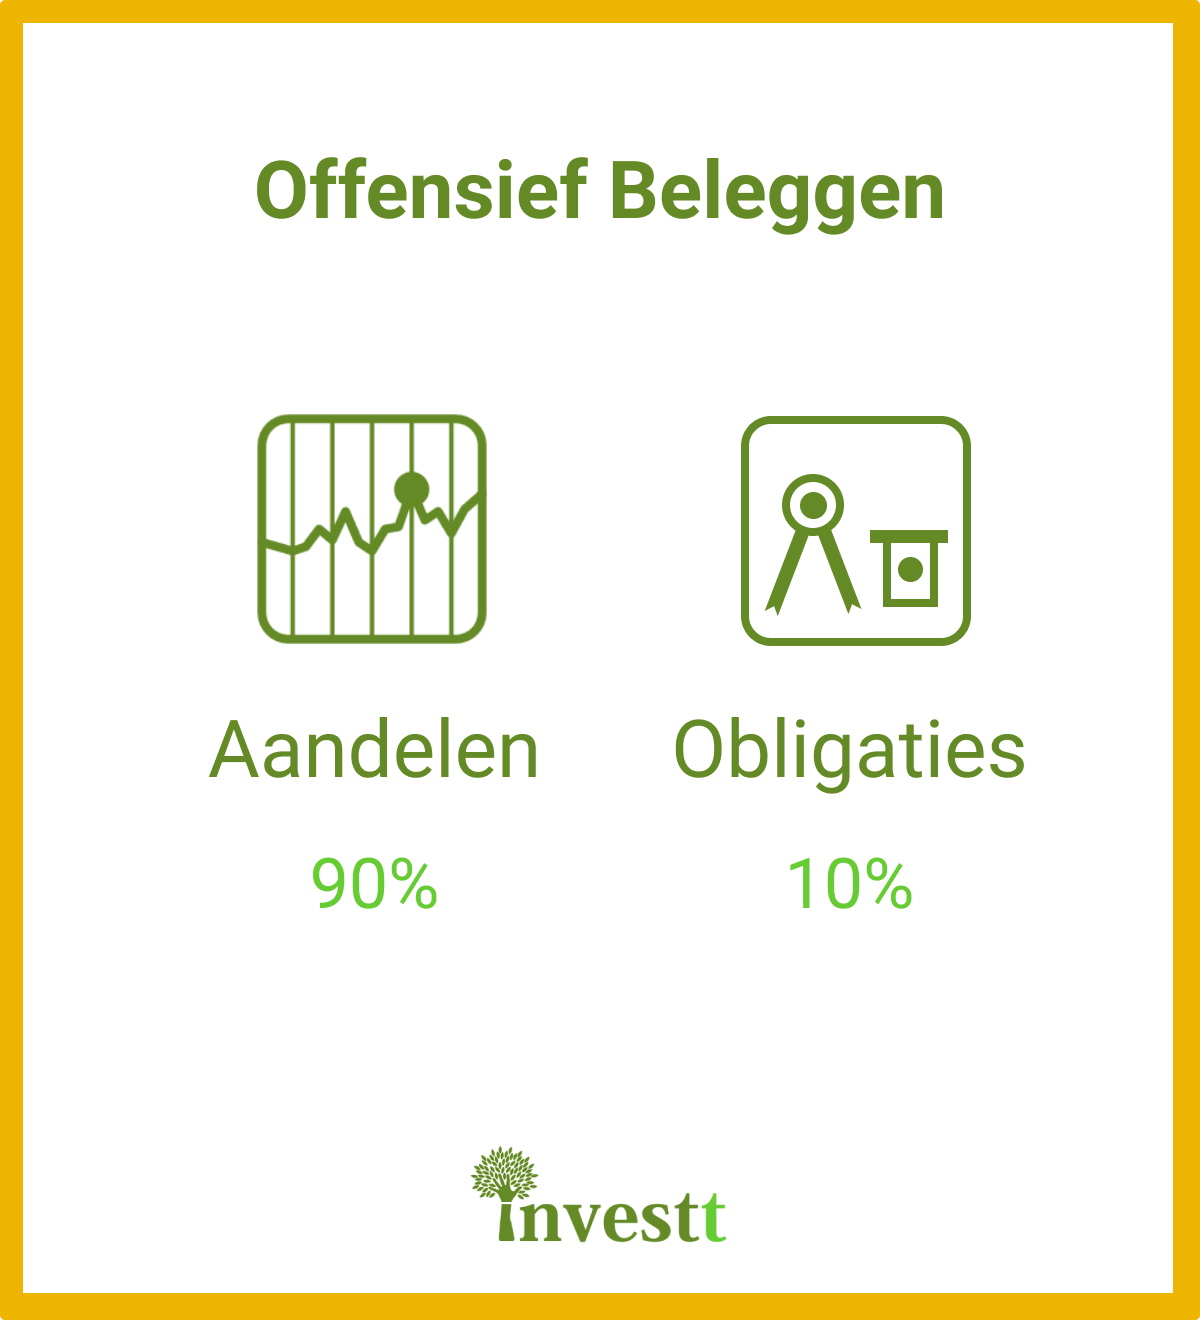 offensief beleggen